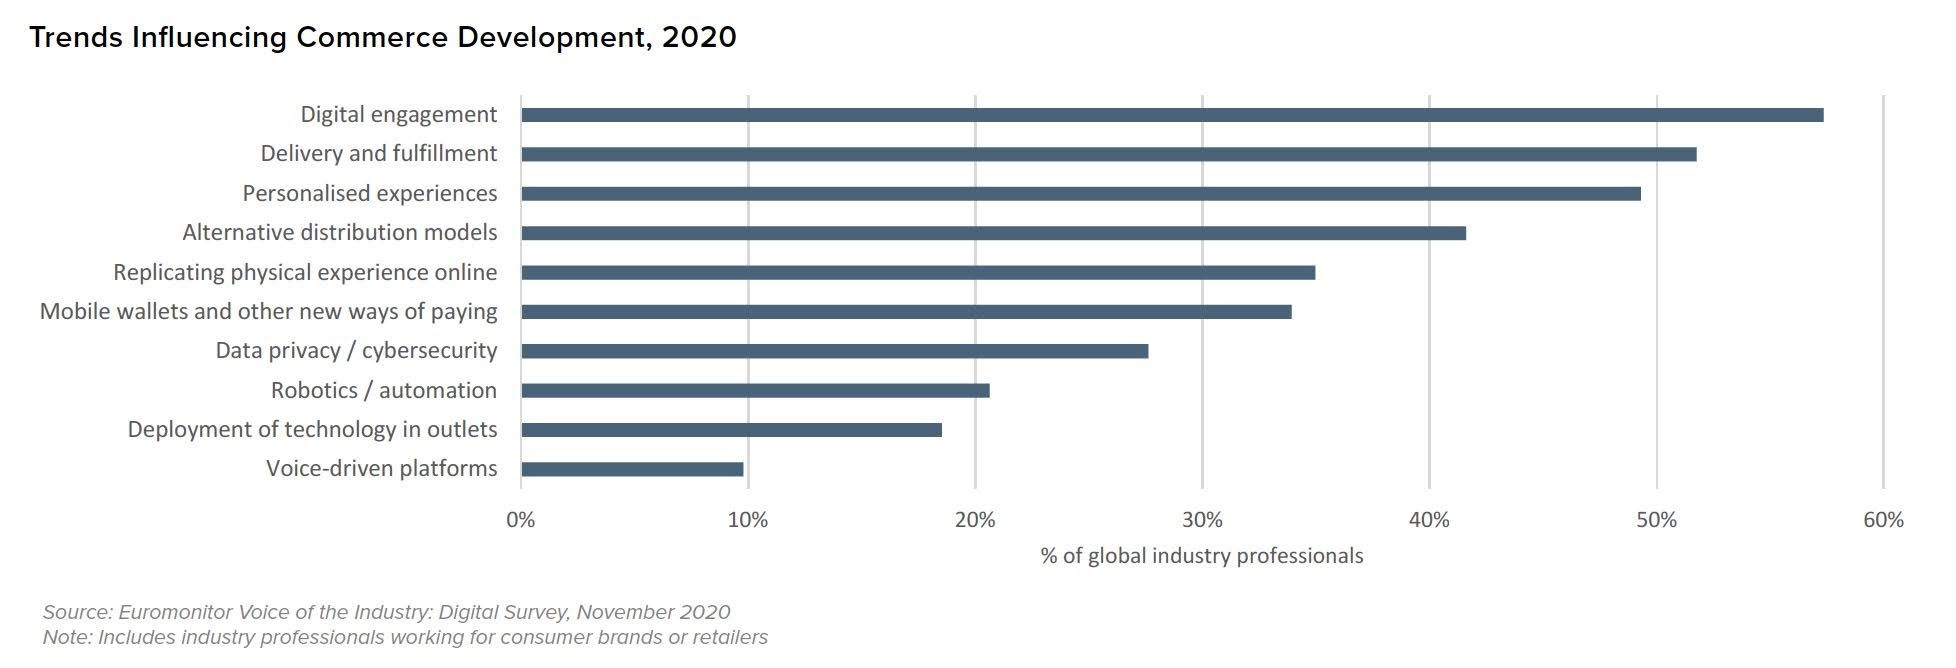 Trends Influencing Commerce Development, 2020. Source: Euromonitor Voice of the Industry: Digital Survey, November 2020. Note: Includes industry professionals working for consumer brands or retailers